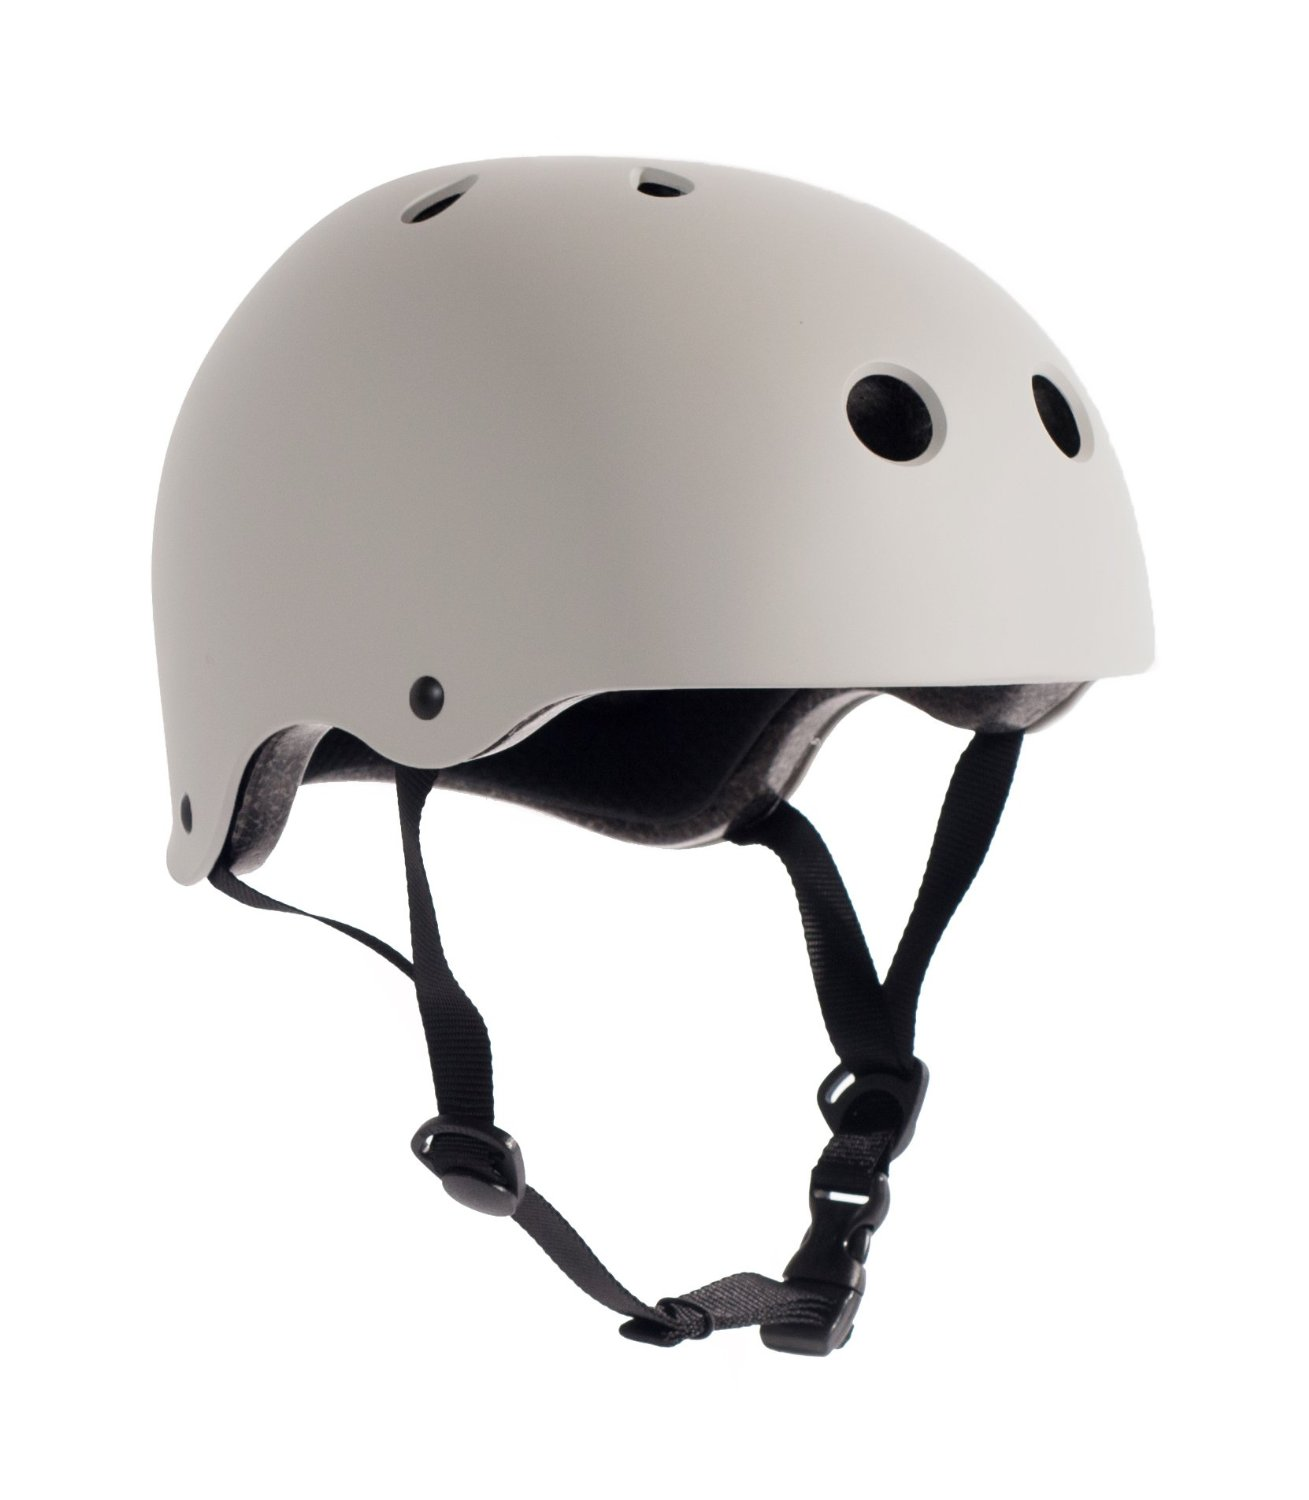 X-Large ProTec Bicycle Helmets